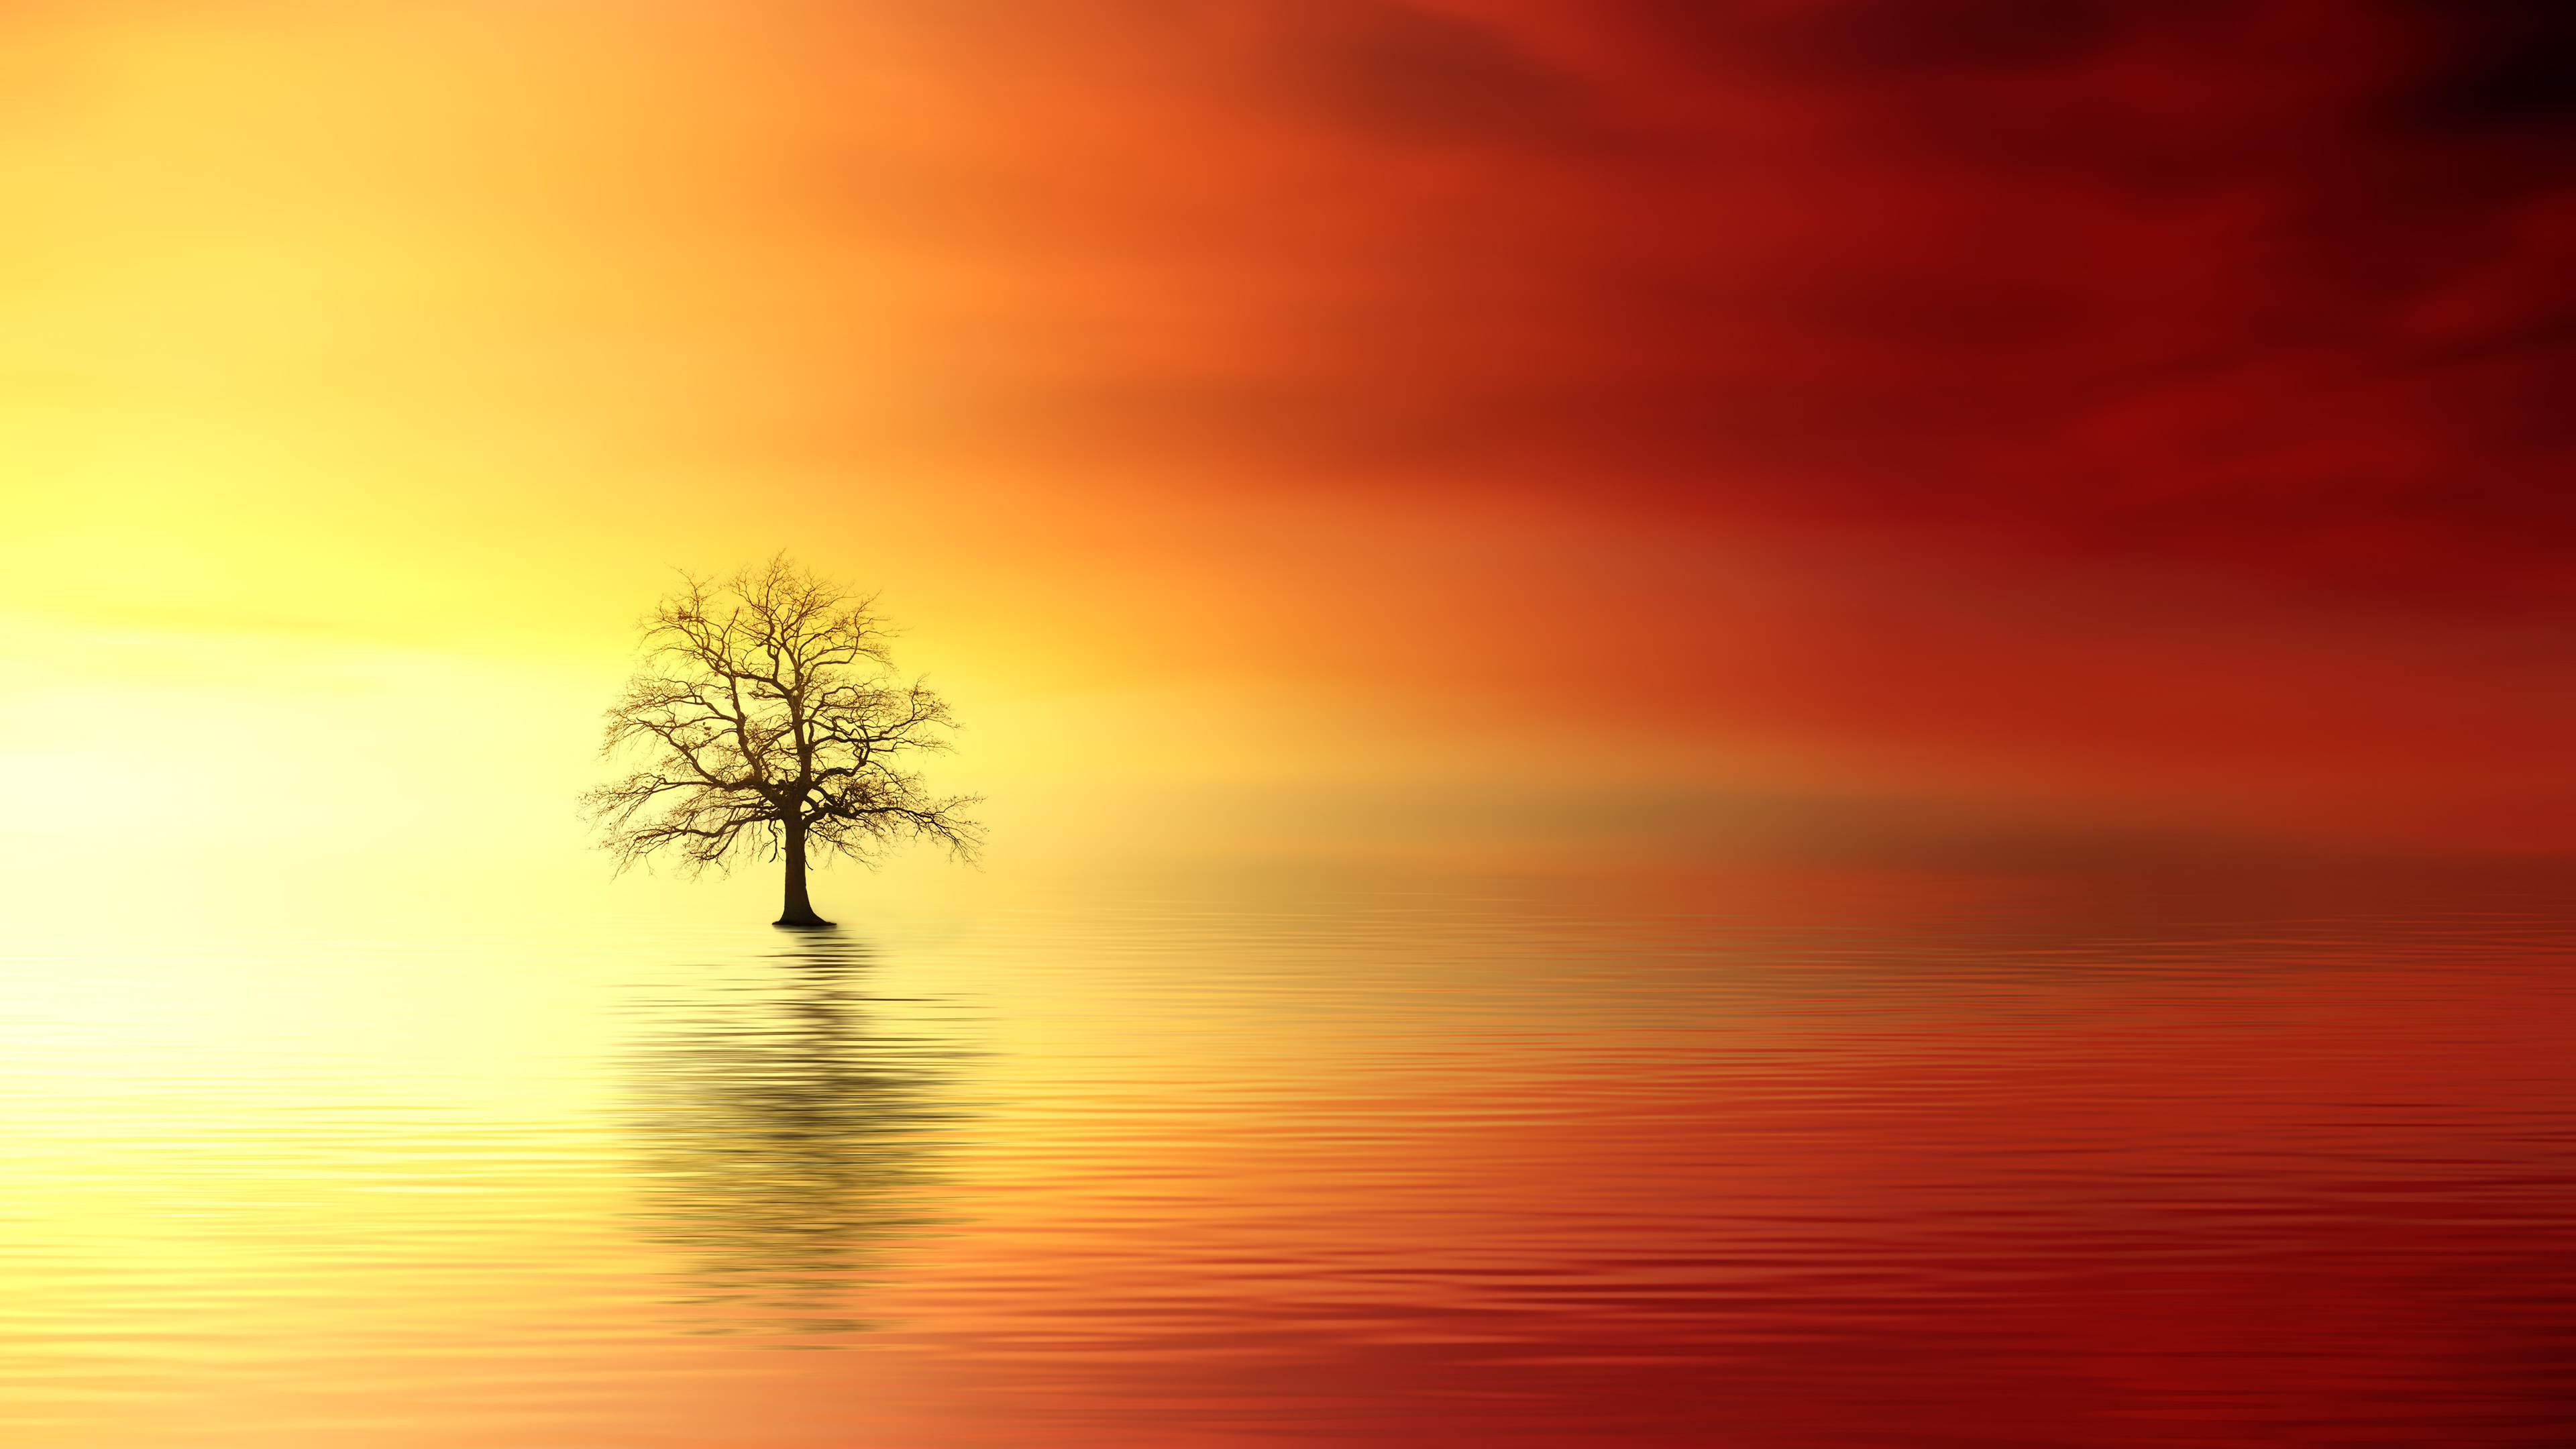 free vivid sunset chromebook wallpaper ready for download